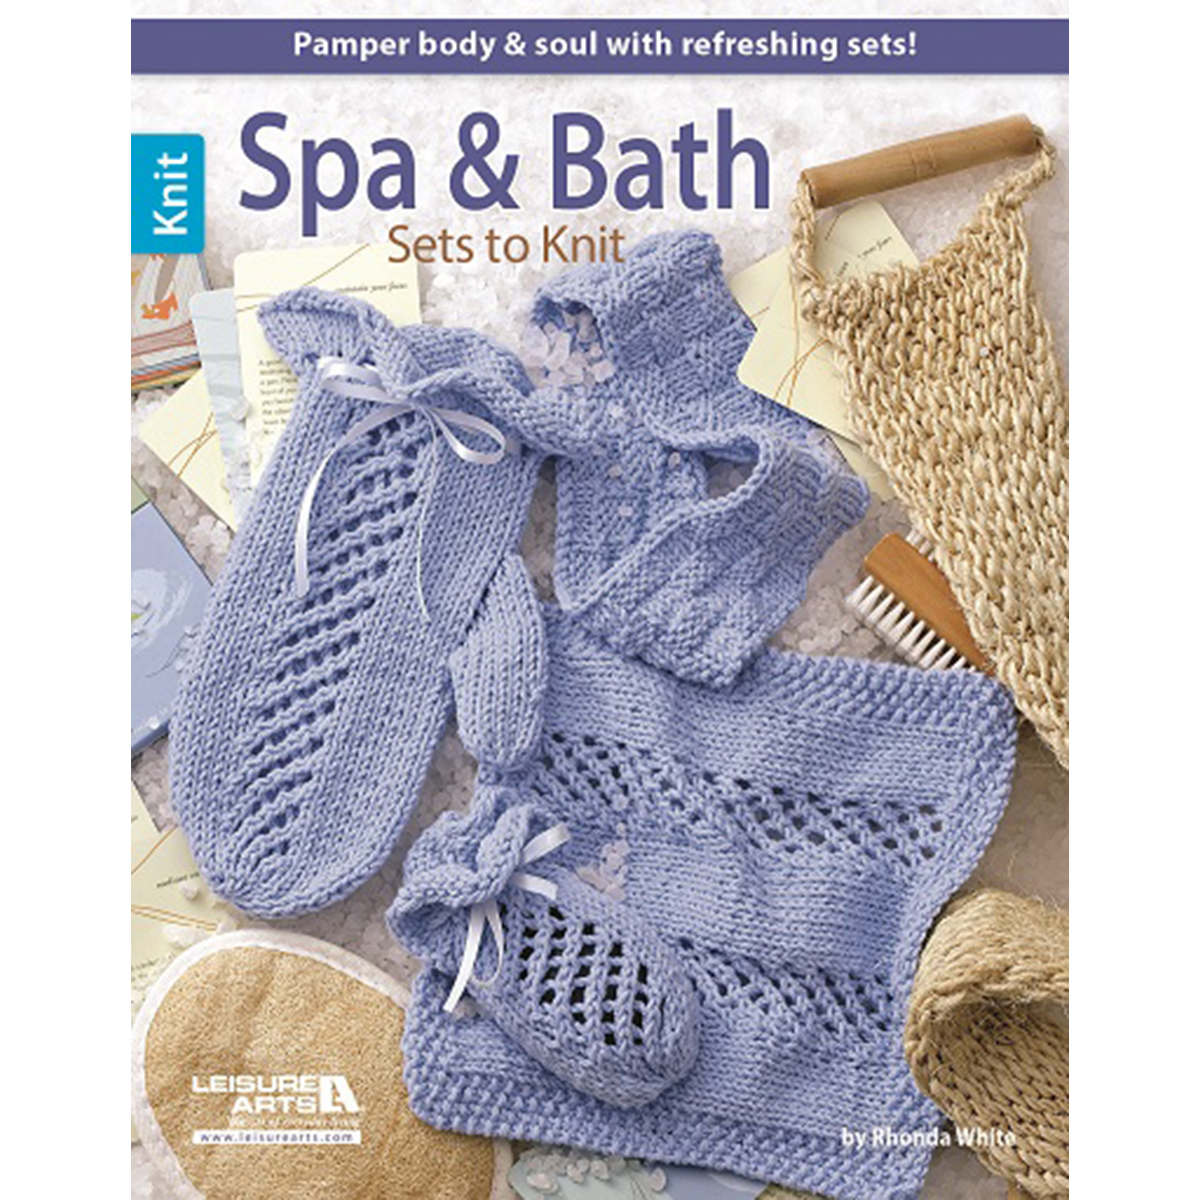 Leisure Arts Knitting Pattern Books : Leisure Arts Spa & Bath Sets To Knit